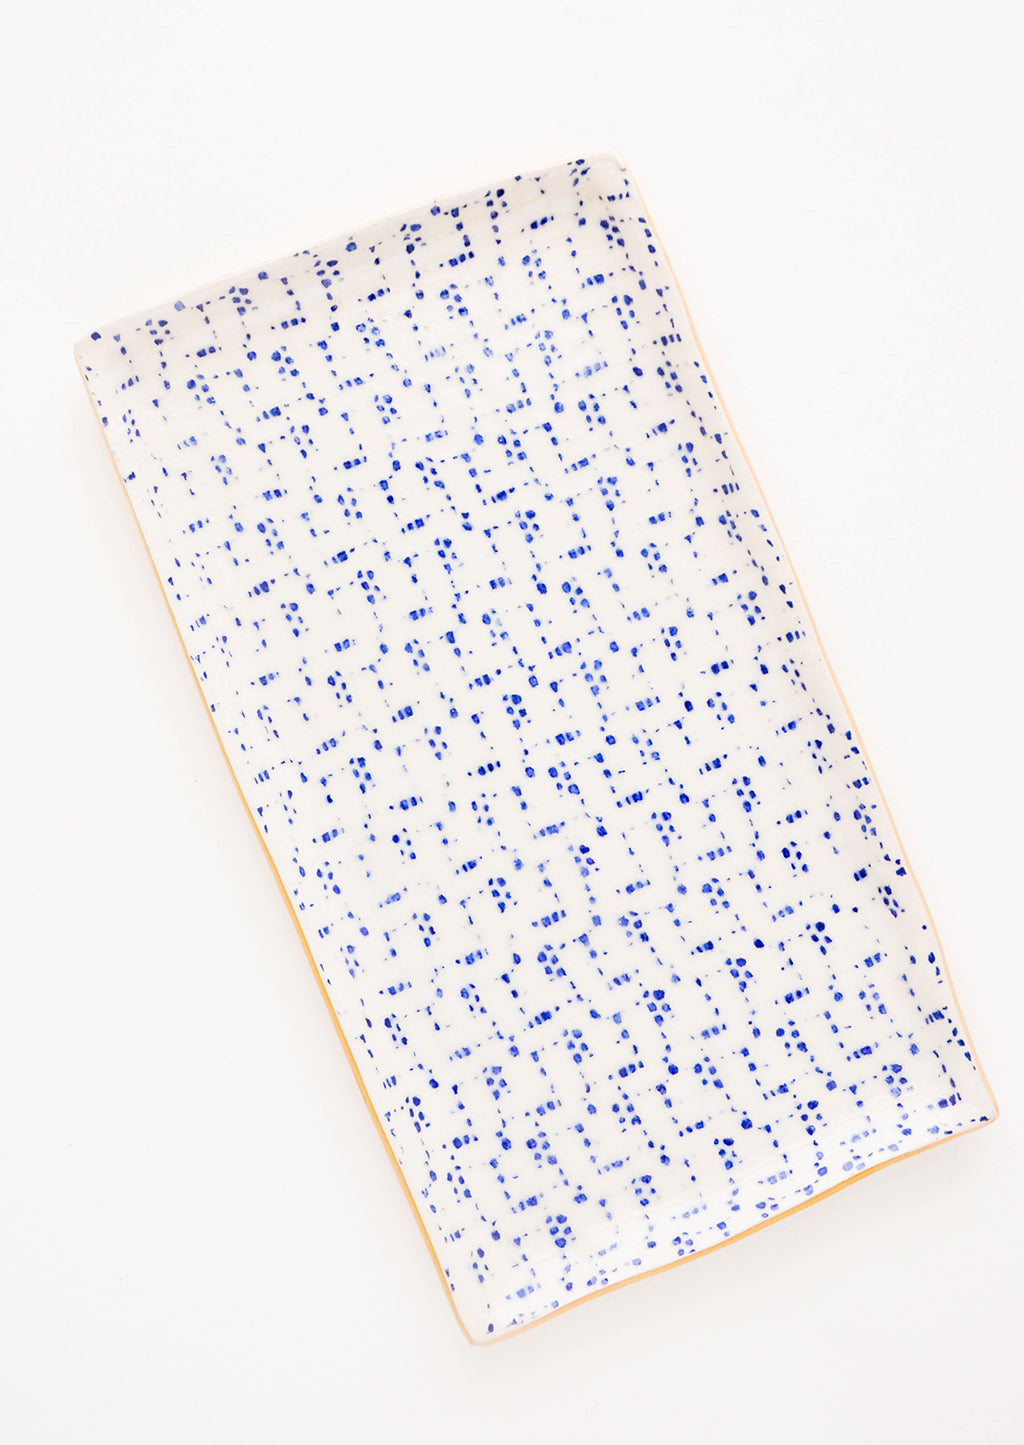 Maze / Cobalt: Pressed Pattern Stacking Rectangle Tray in Maze / Cobalt - LEIF